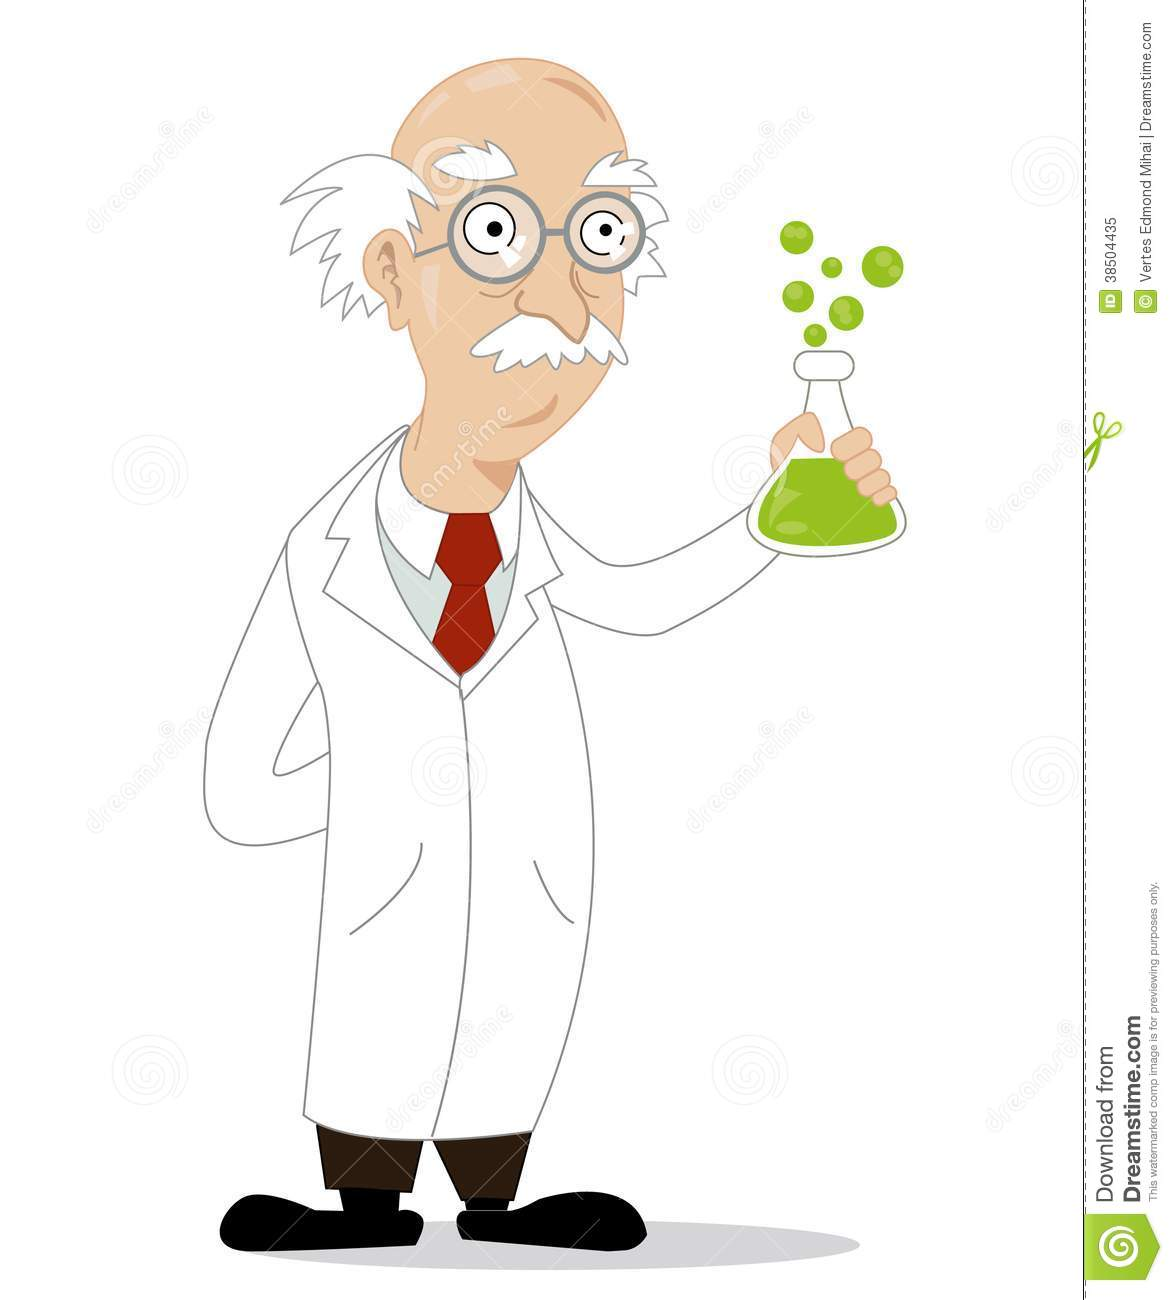 Funny Cartoon Scientist Royalty Free Stock Photo - Image: 38504435